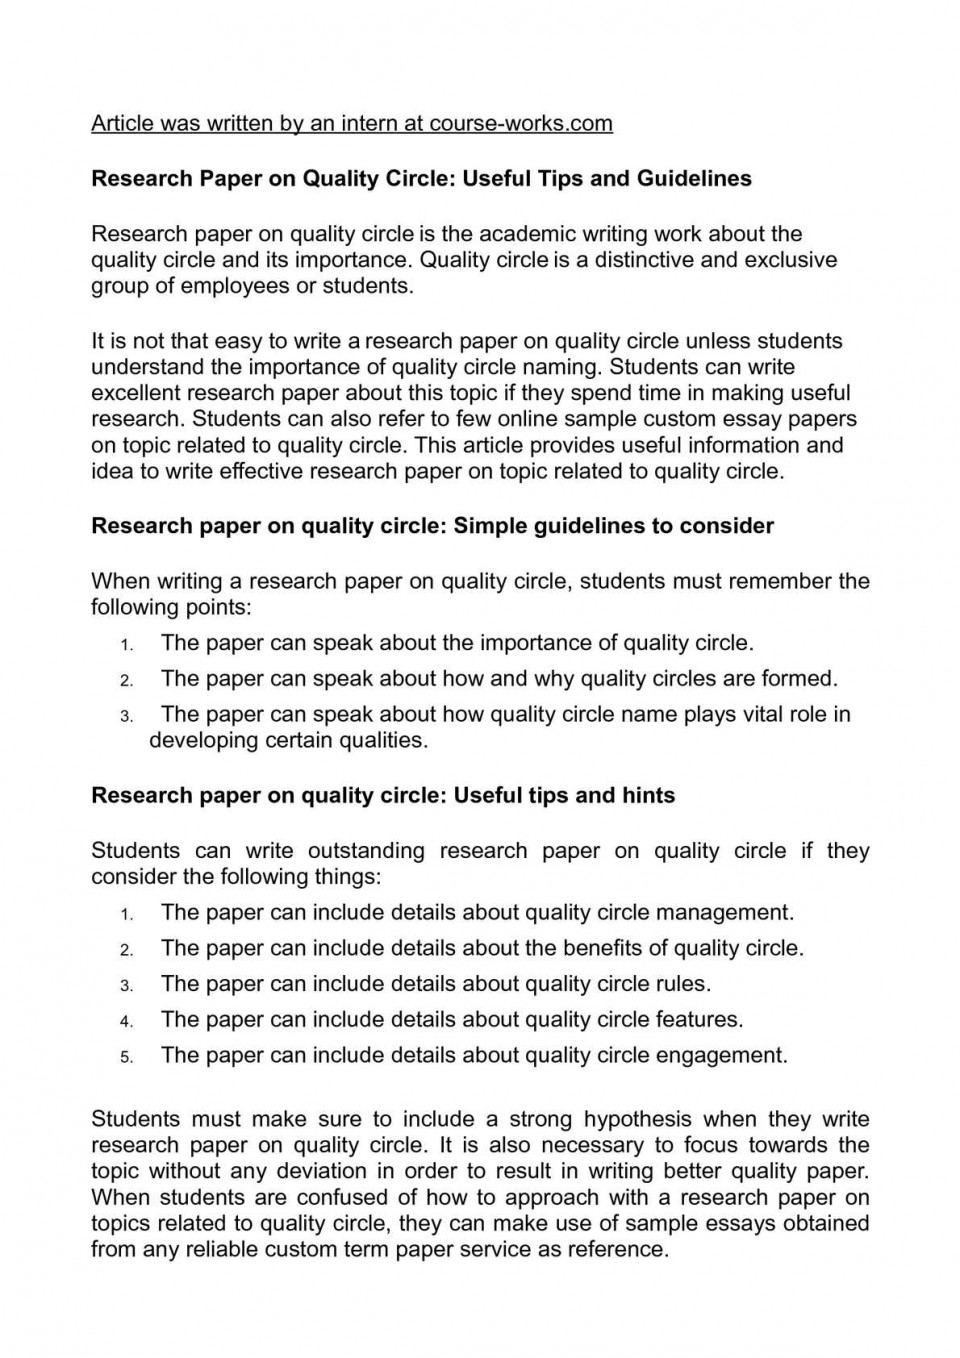 008 P1 Research Paper Wonderful Written Buy Pre Papers For Sale Free 960